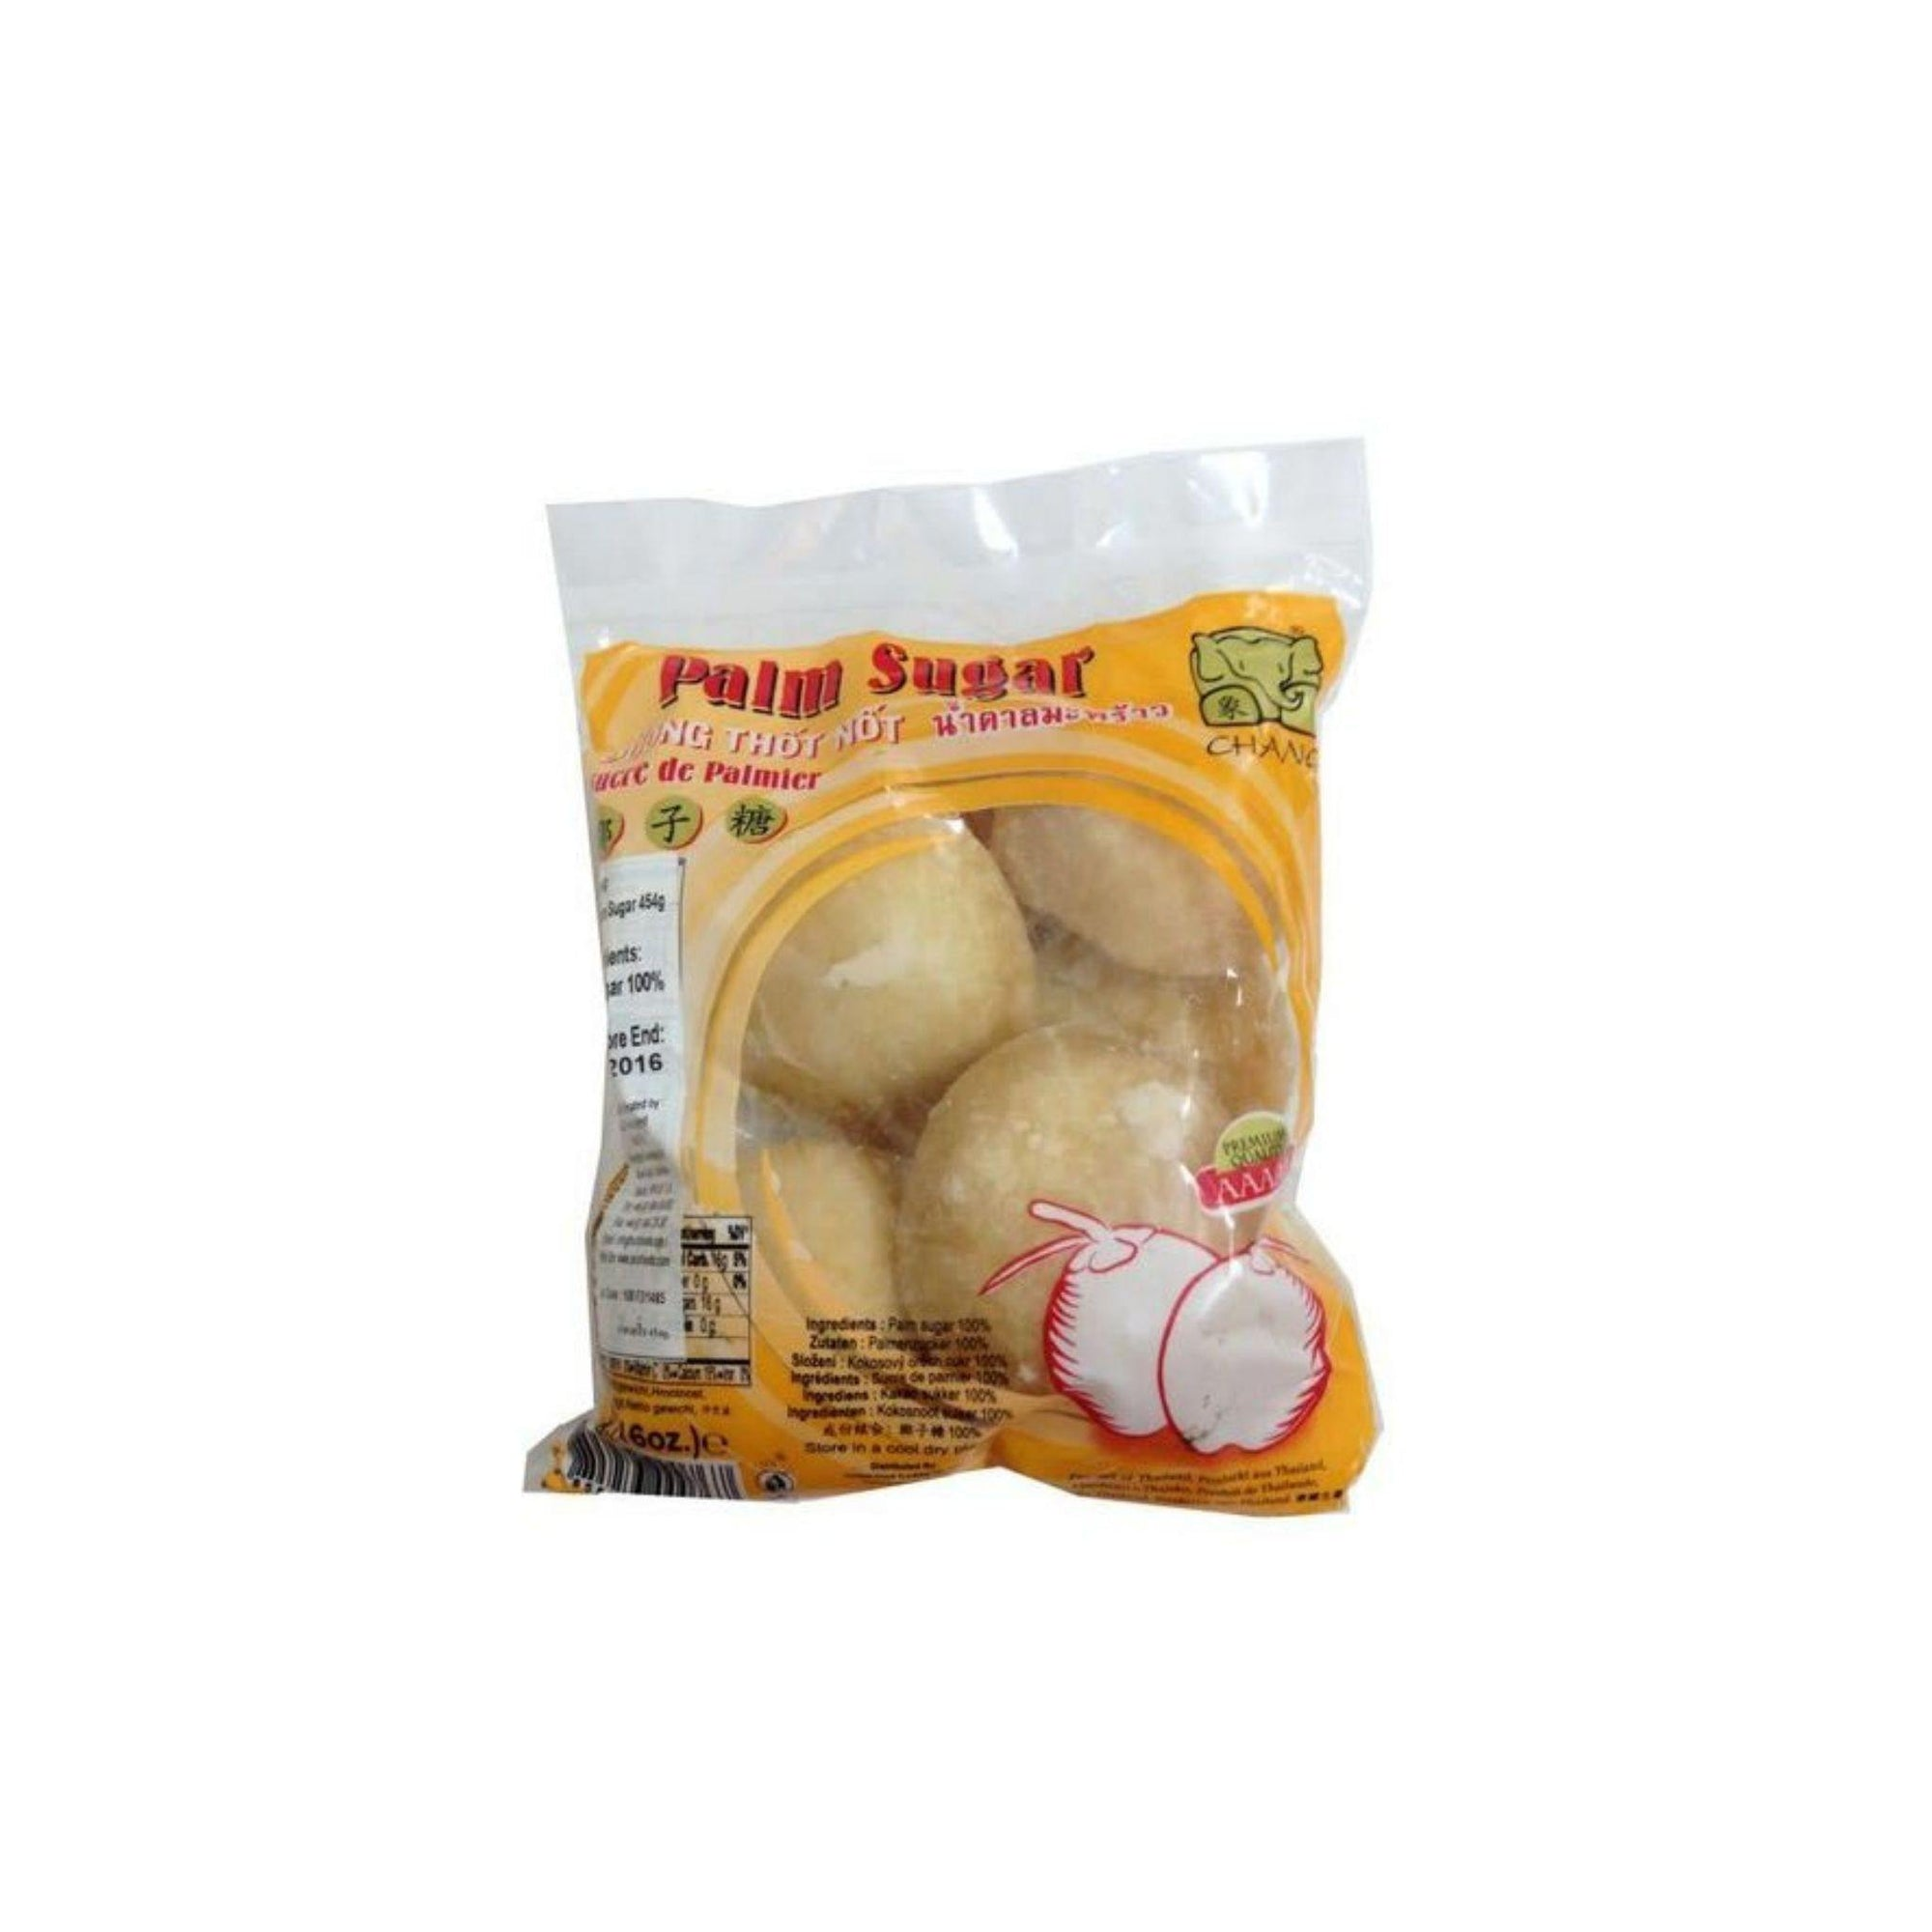 Chang Palm Sugar 454G - Asian Harvest